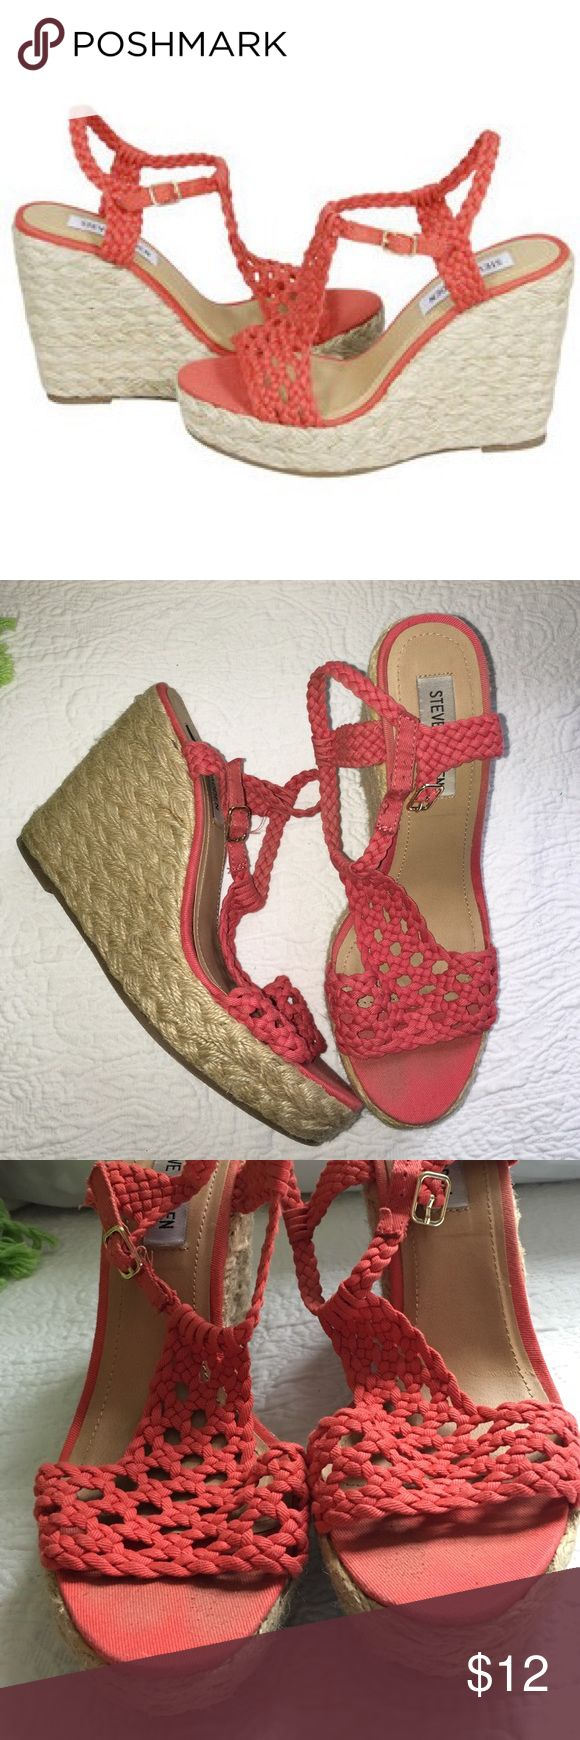 Steve Madden manggo coral wedges Worn 2-3 times for graduation and party. Scuff shown in pictures by toes but overall good condition for price! Steve Madden Shoes Wedges